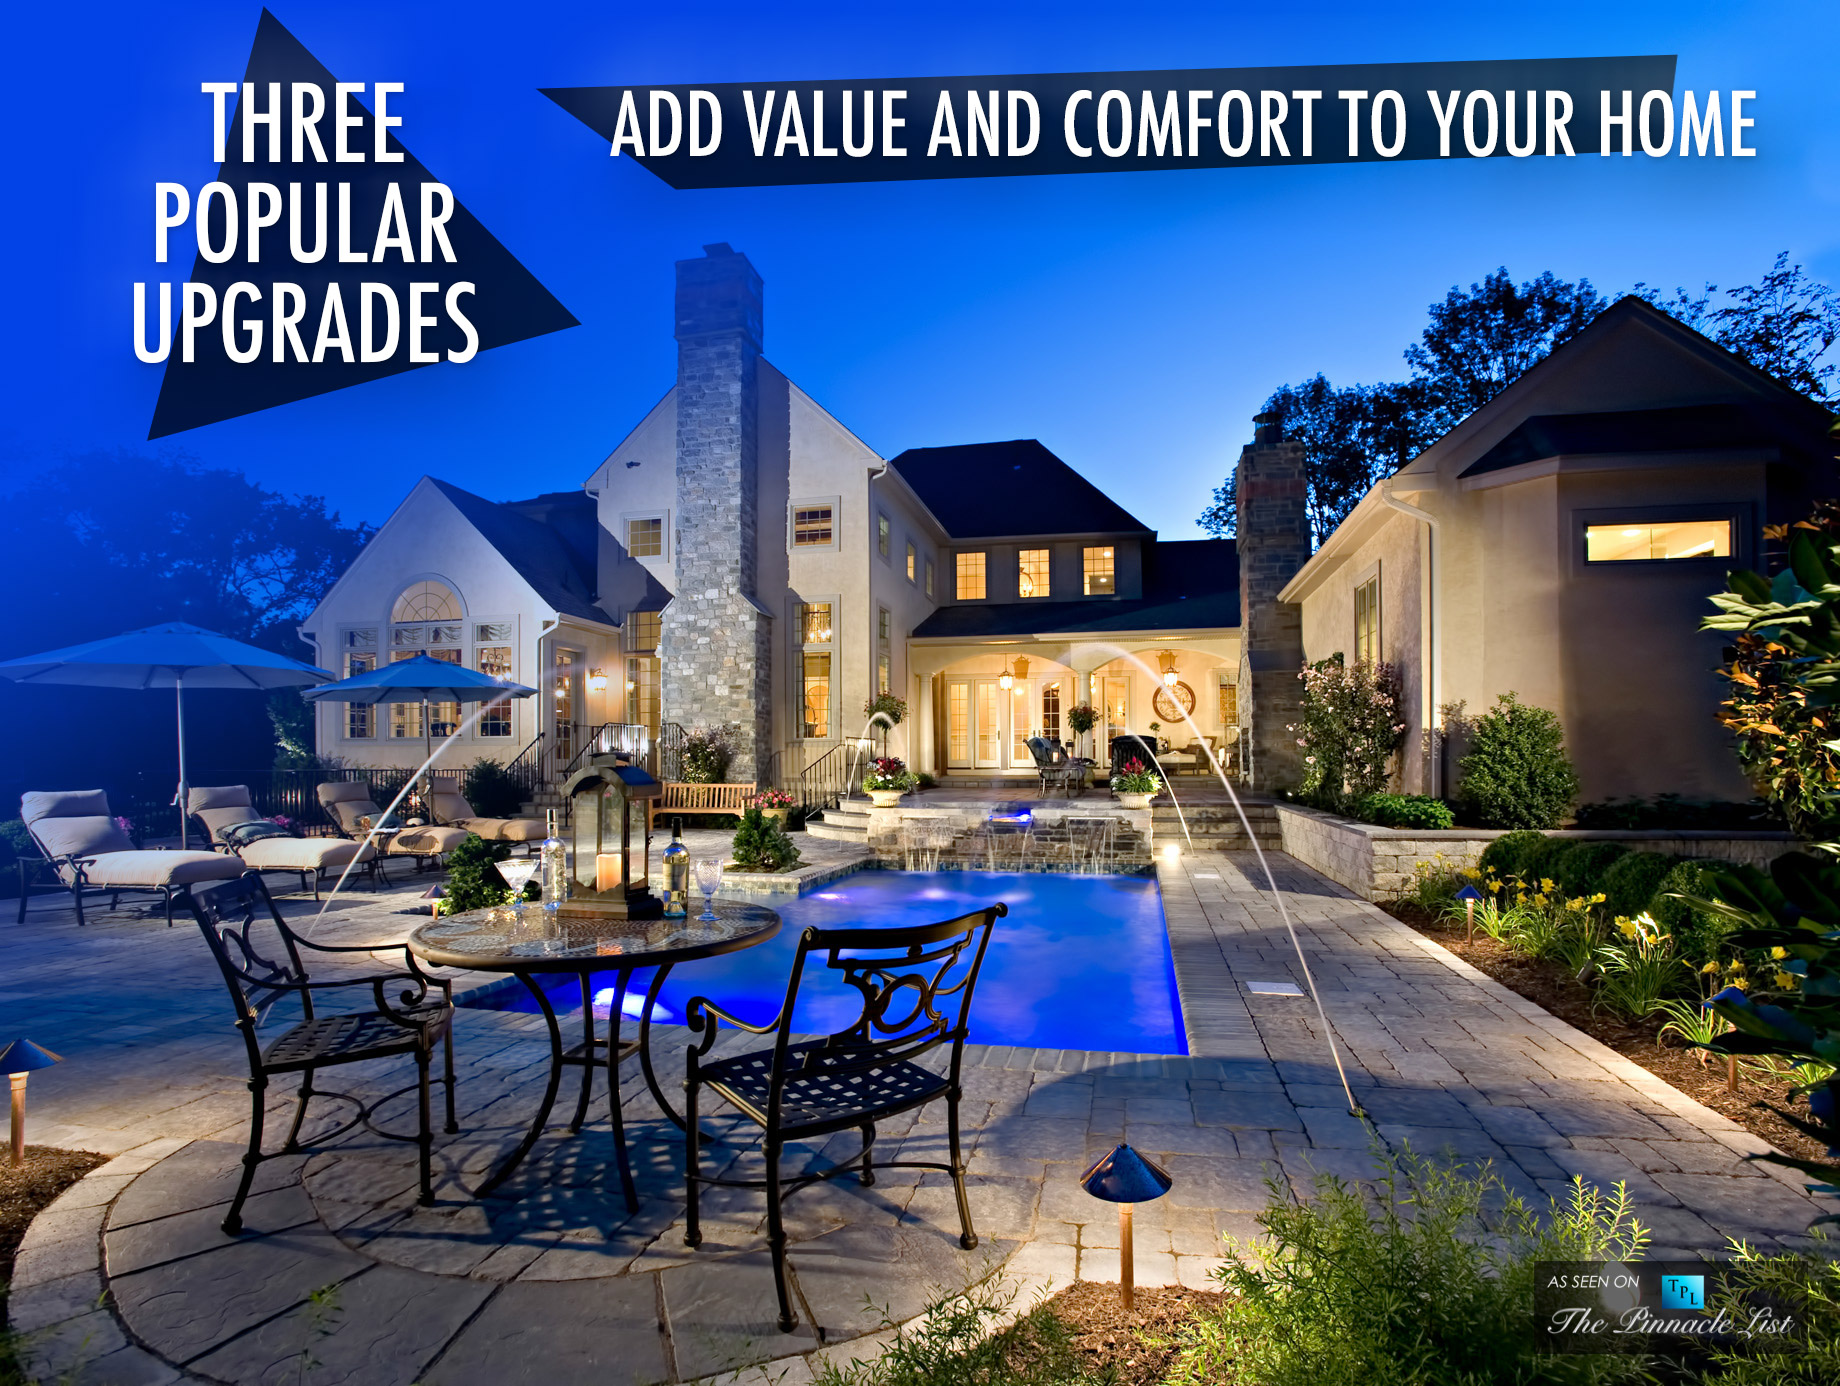 3 Popular Upgrades that Add Value and Comfort to Your Home